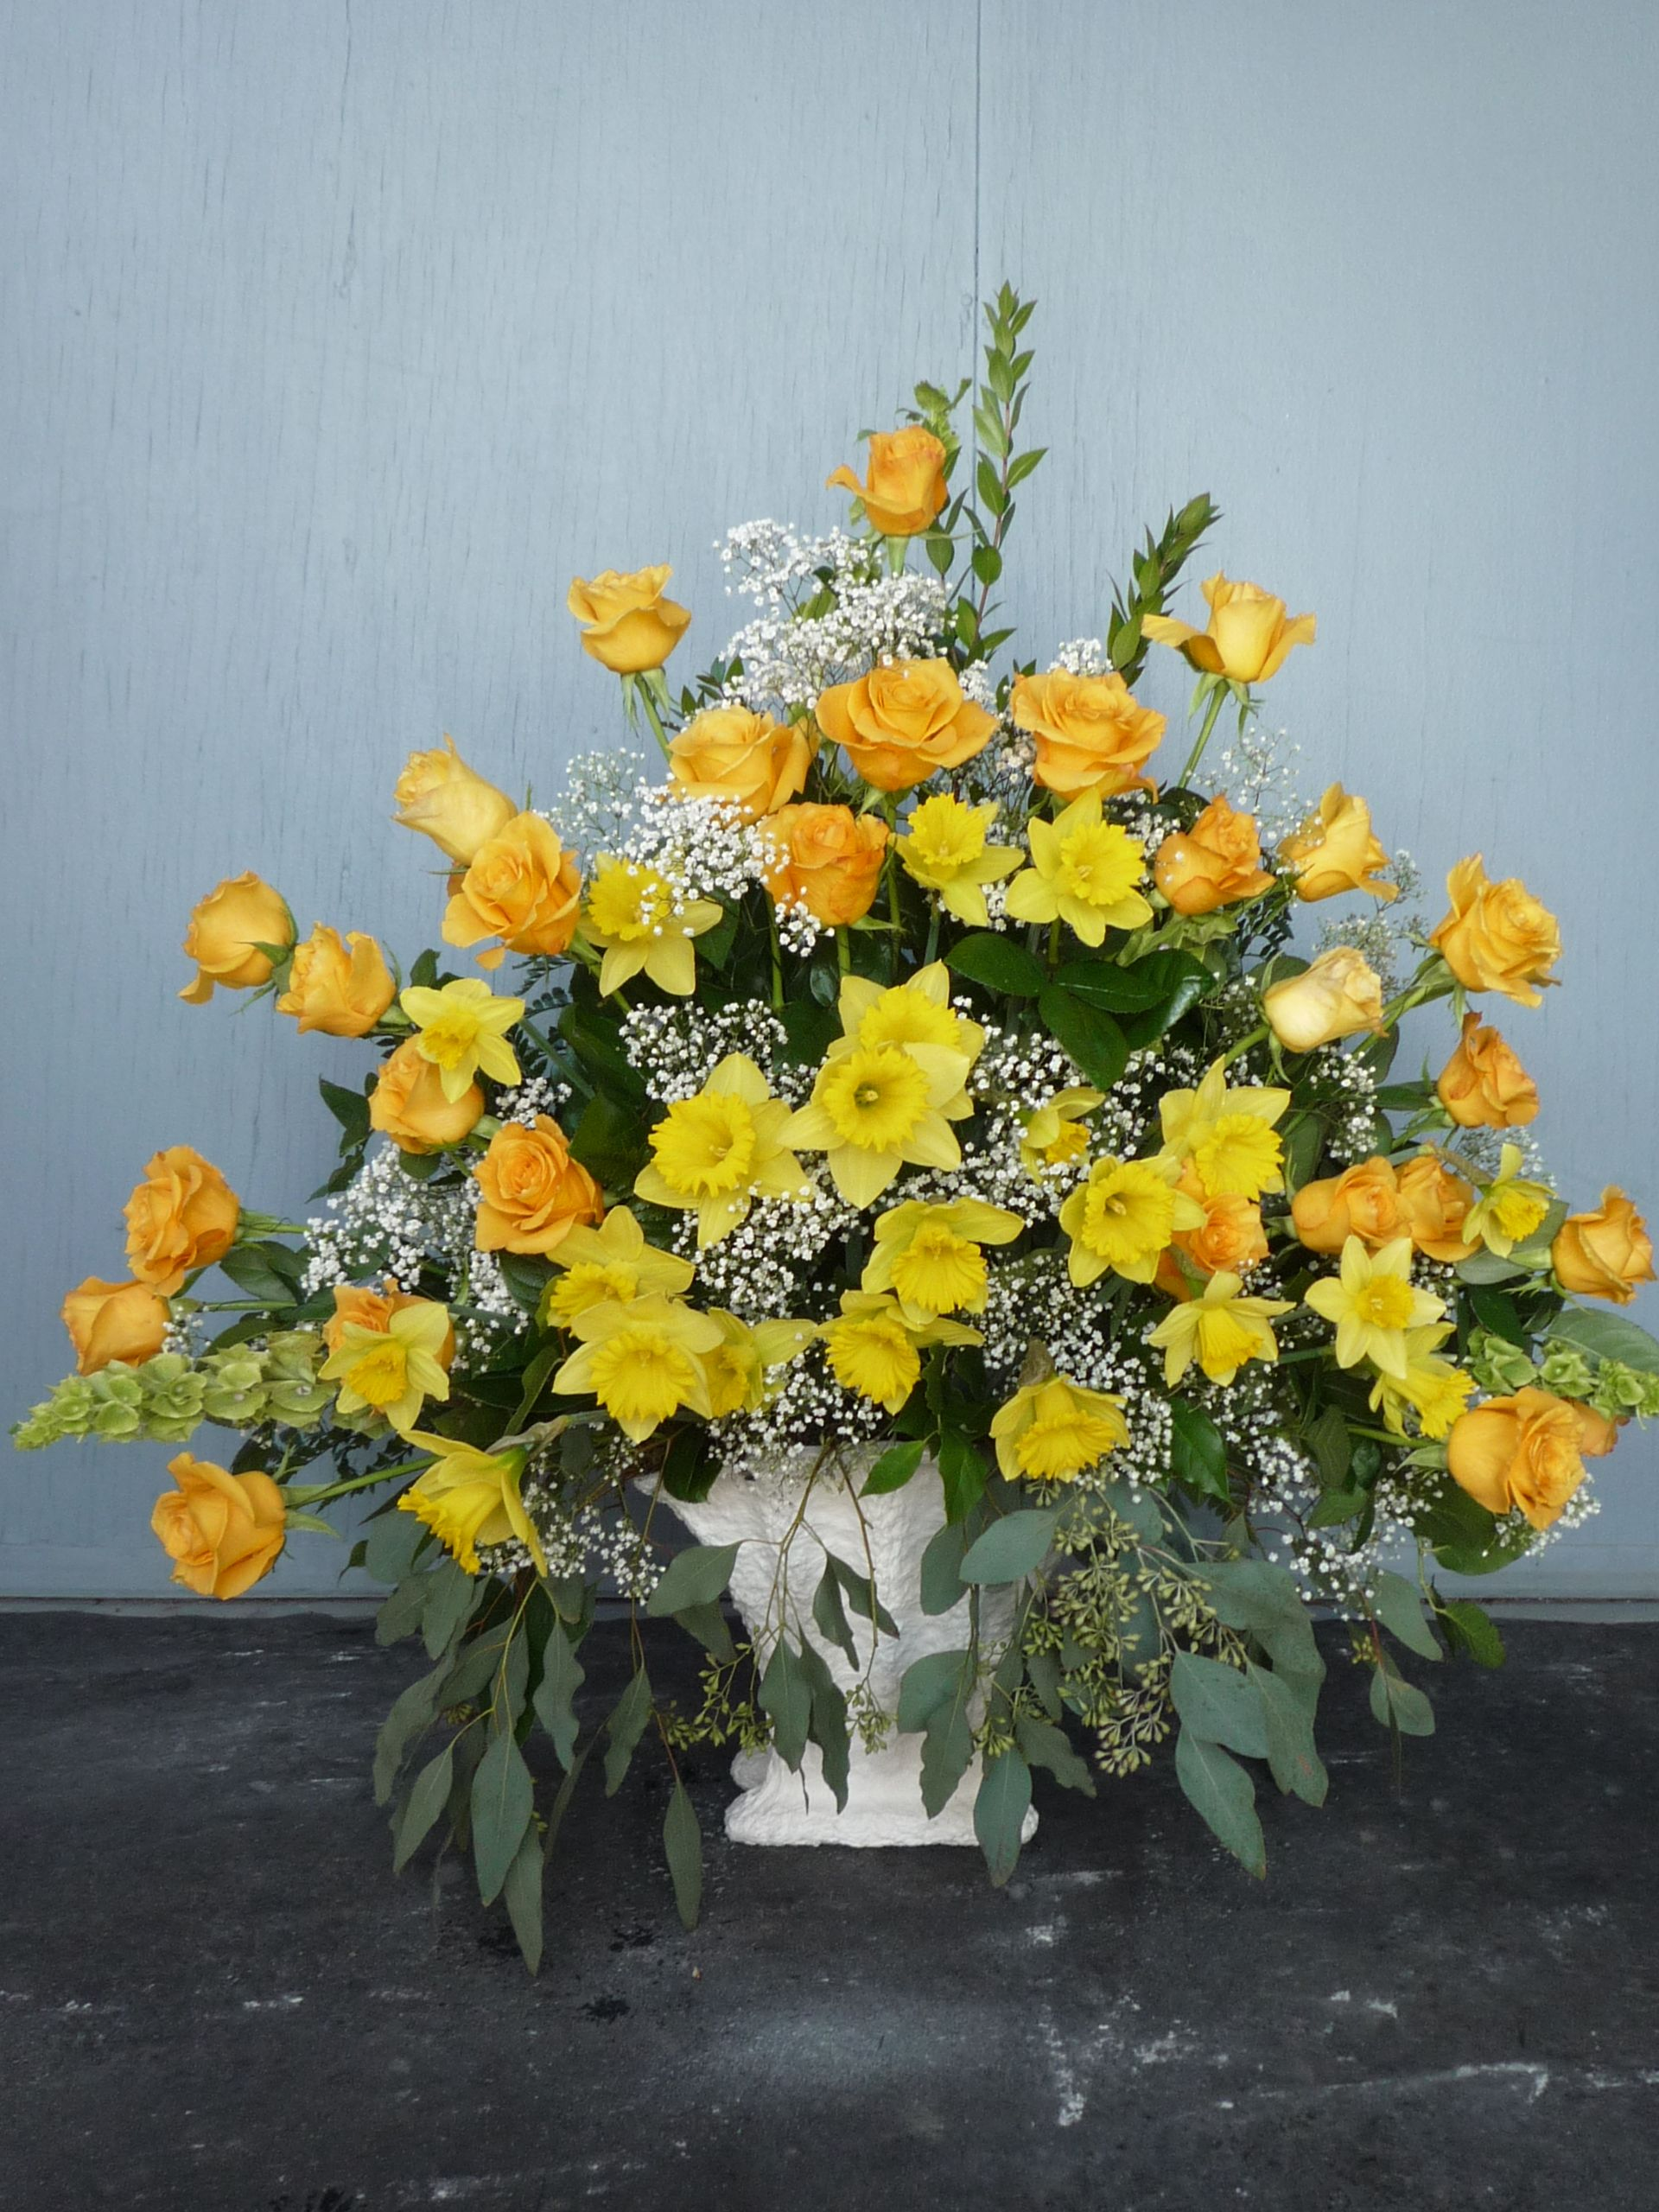 Large yellow rose and daffodil sympathy arrangement in memorial large yellow rose and daffodil sympathy arrangement izmirmasajfo